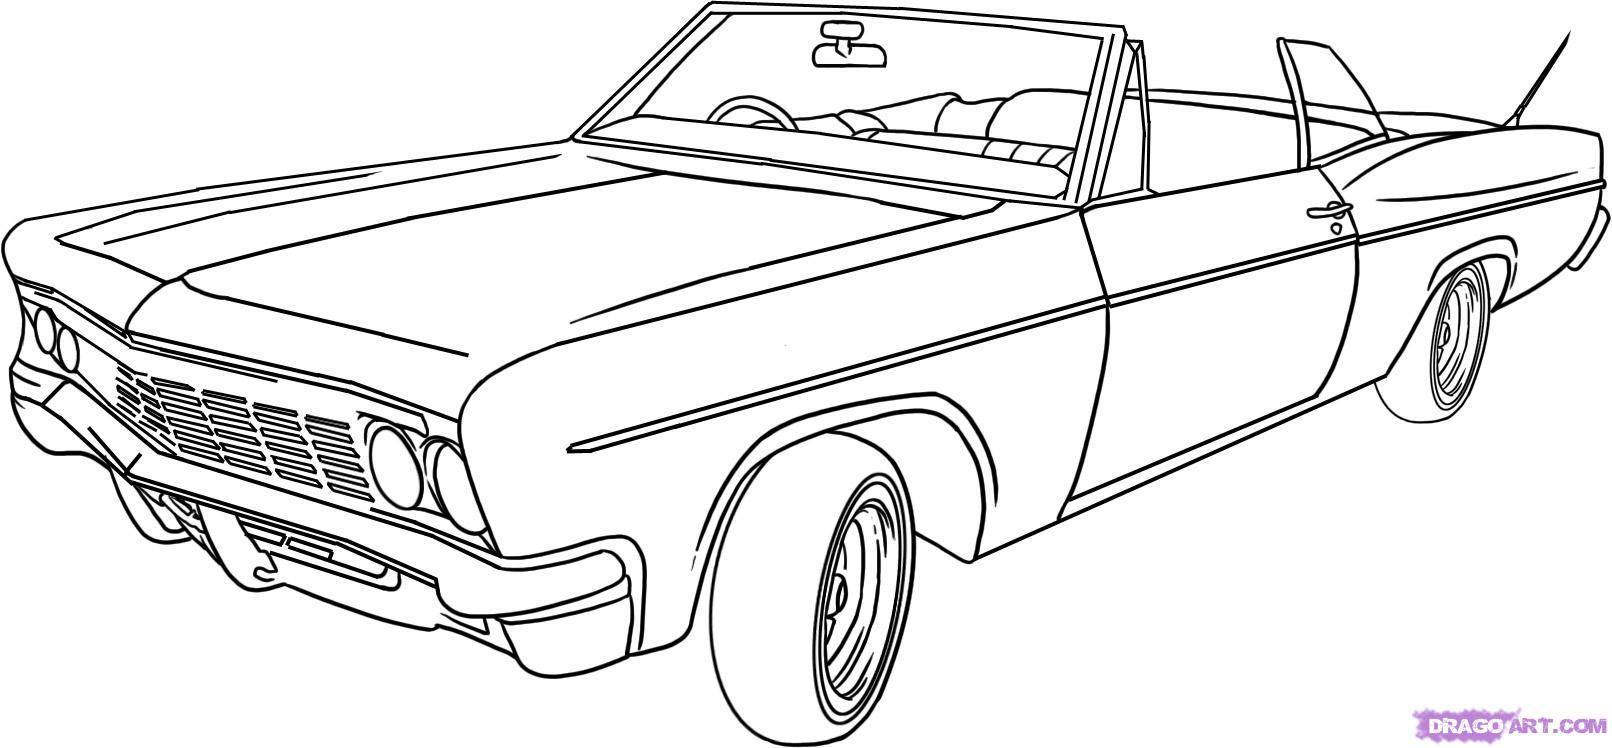 How to draw a lowrider step by step cars draw cars online